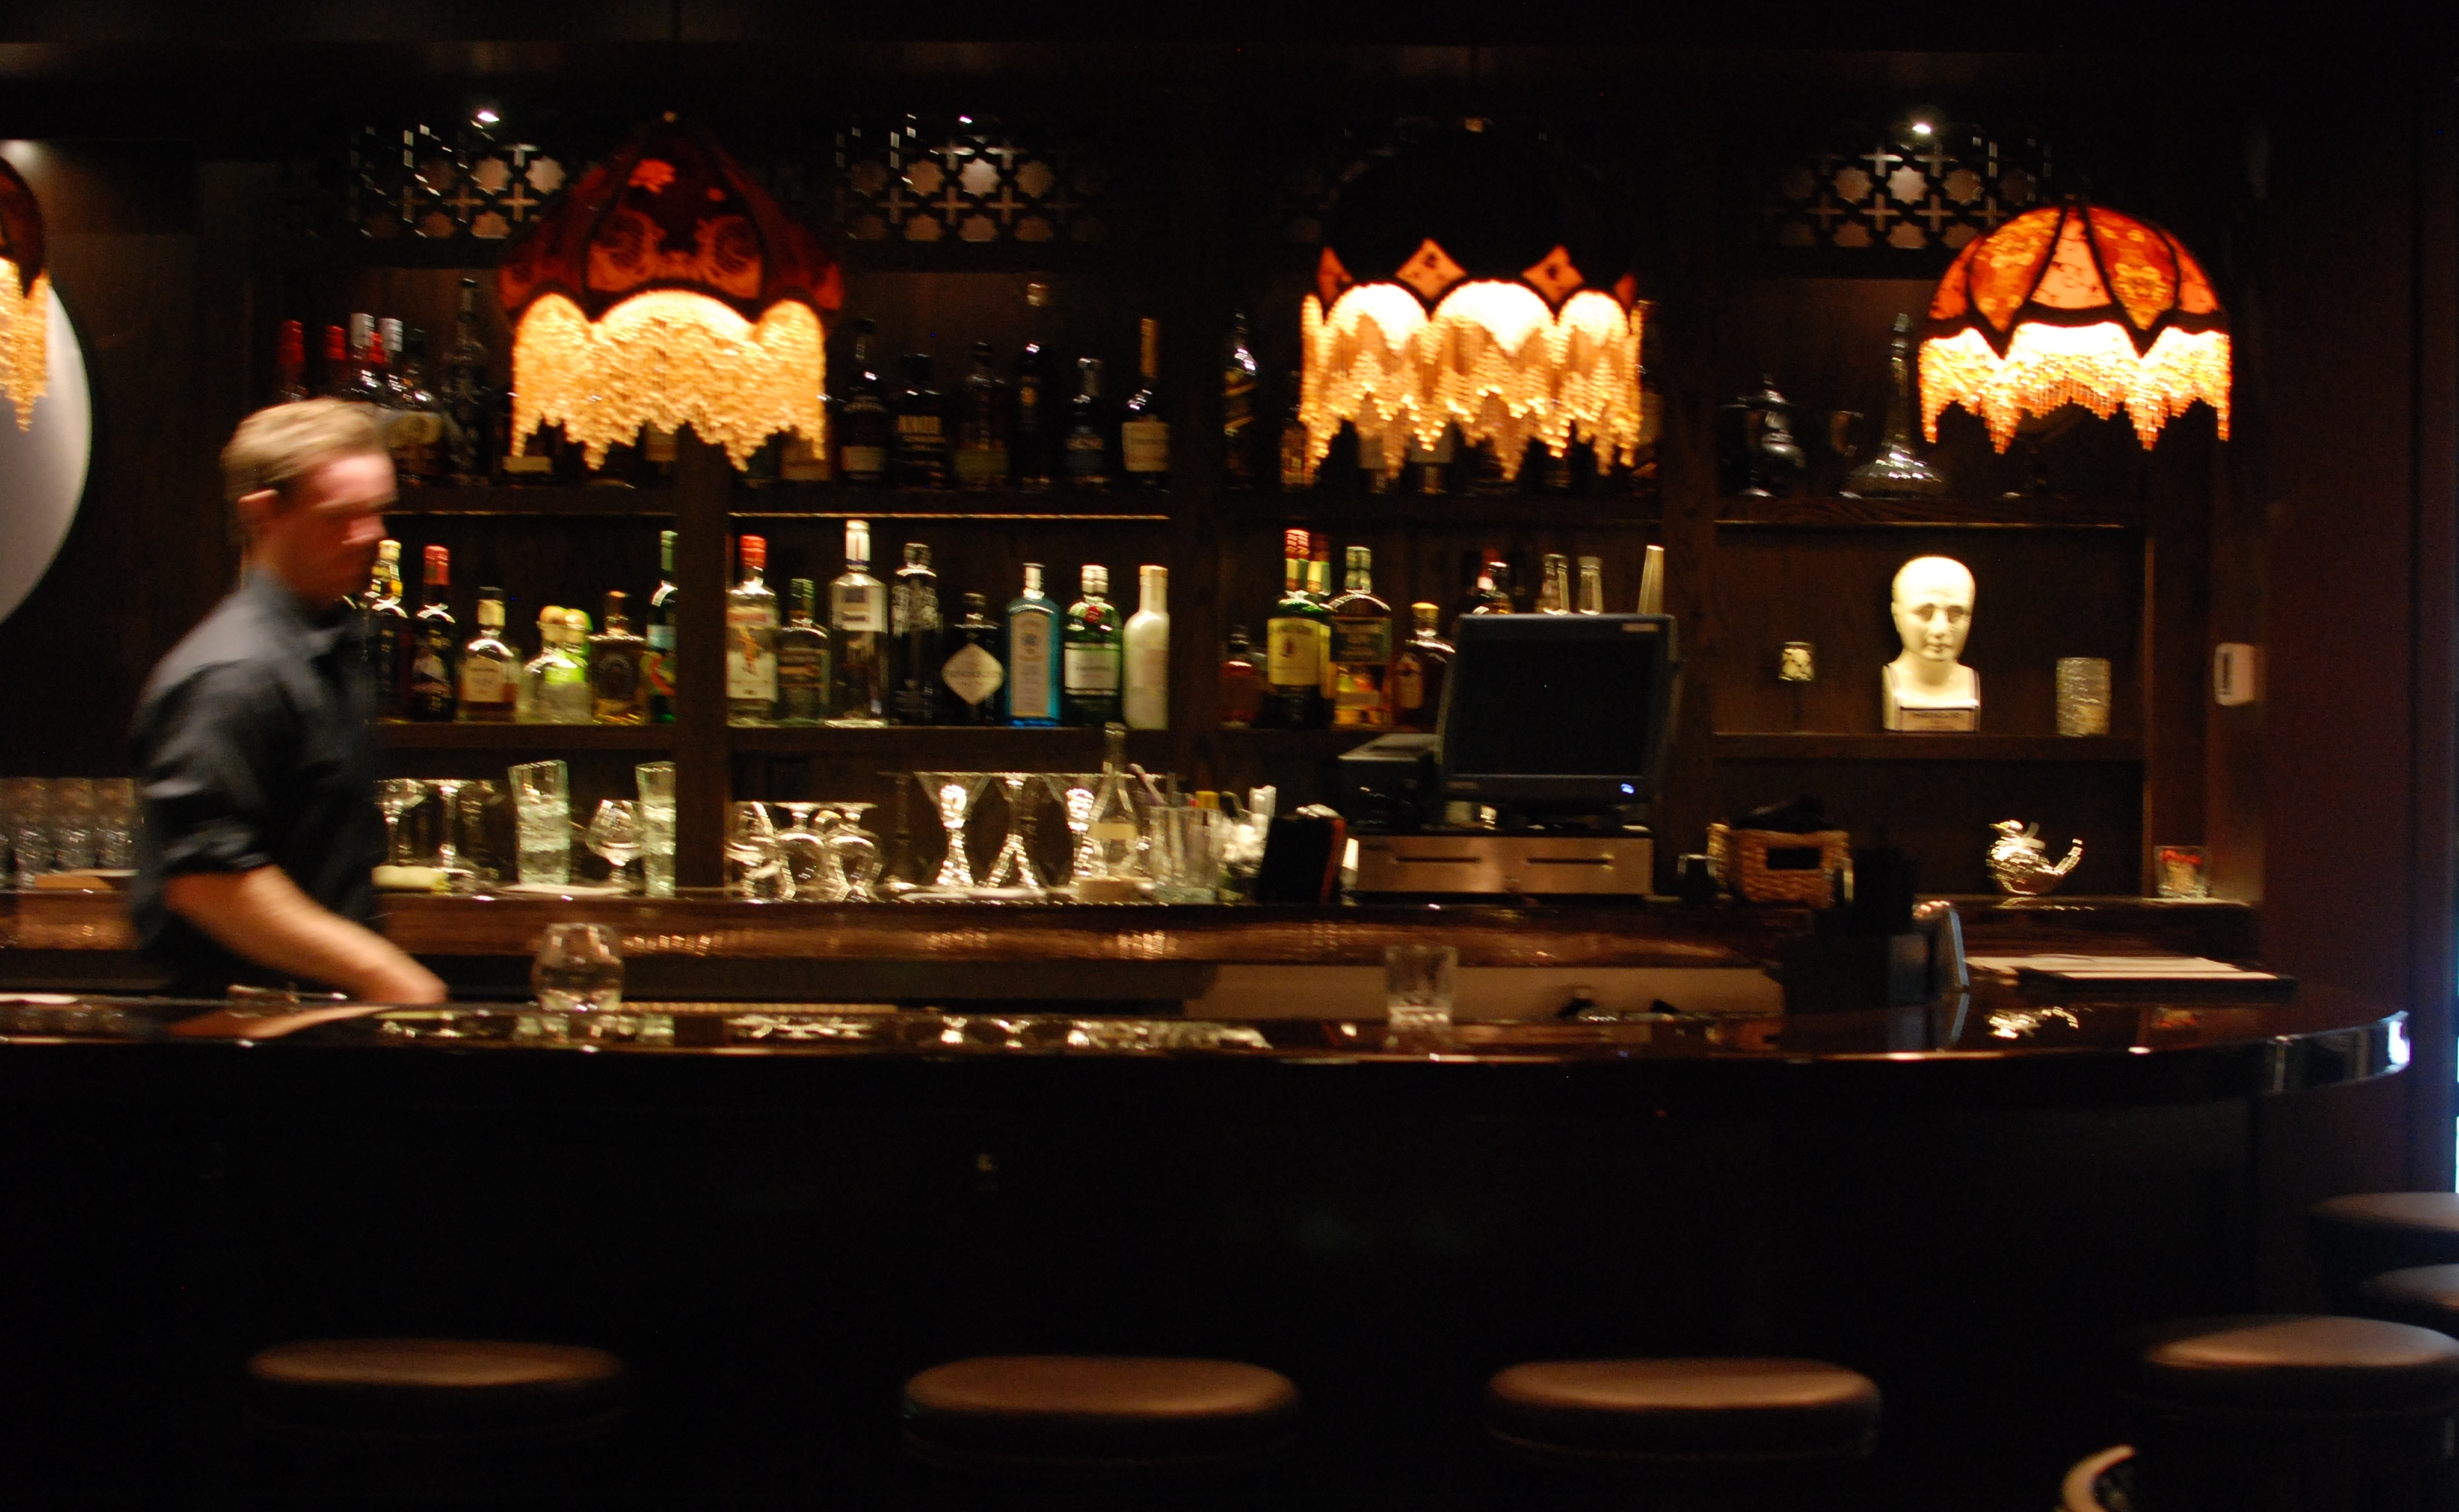 A darkened bar with wood top and back stocked with bottles. A blurred bartender walks past